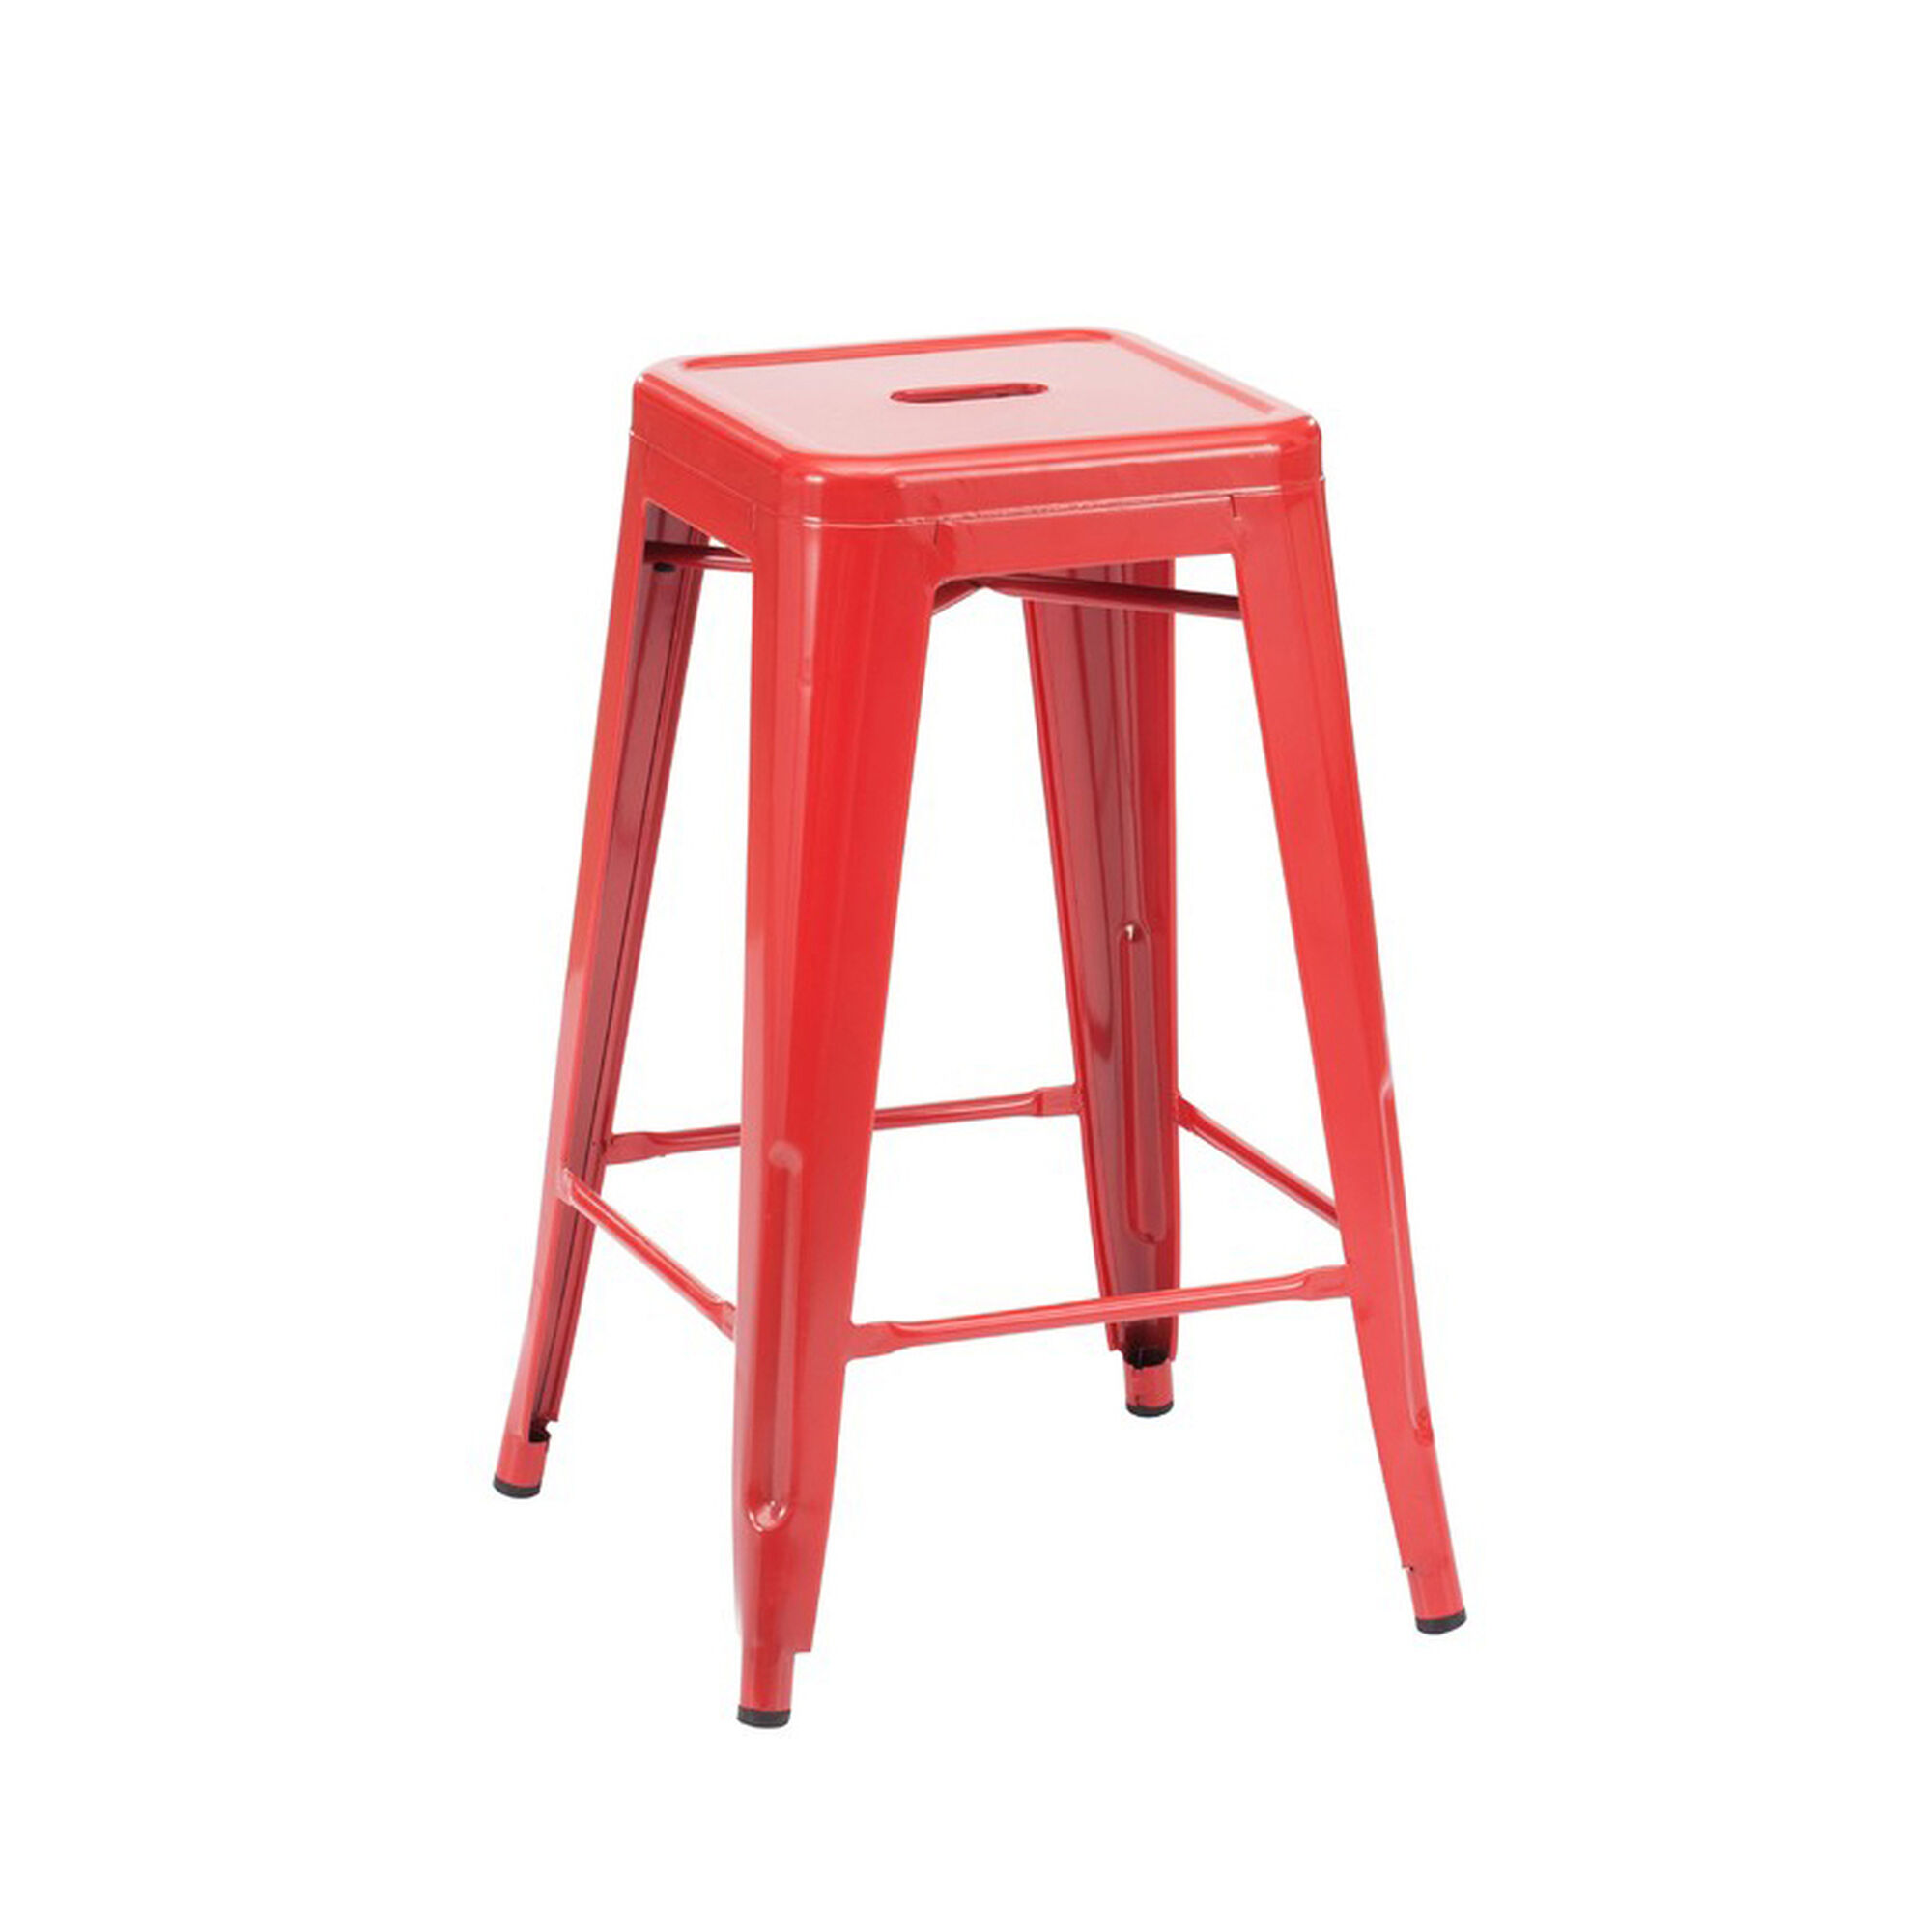 Our Dreux Glossy Red Steel Stackable Counter Stool Set